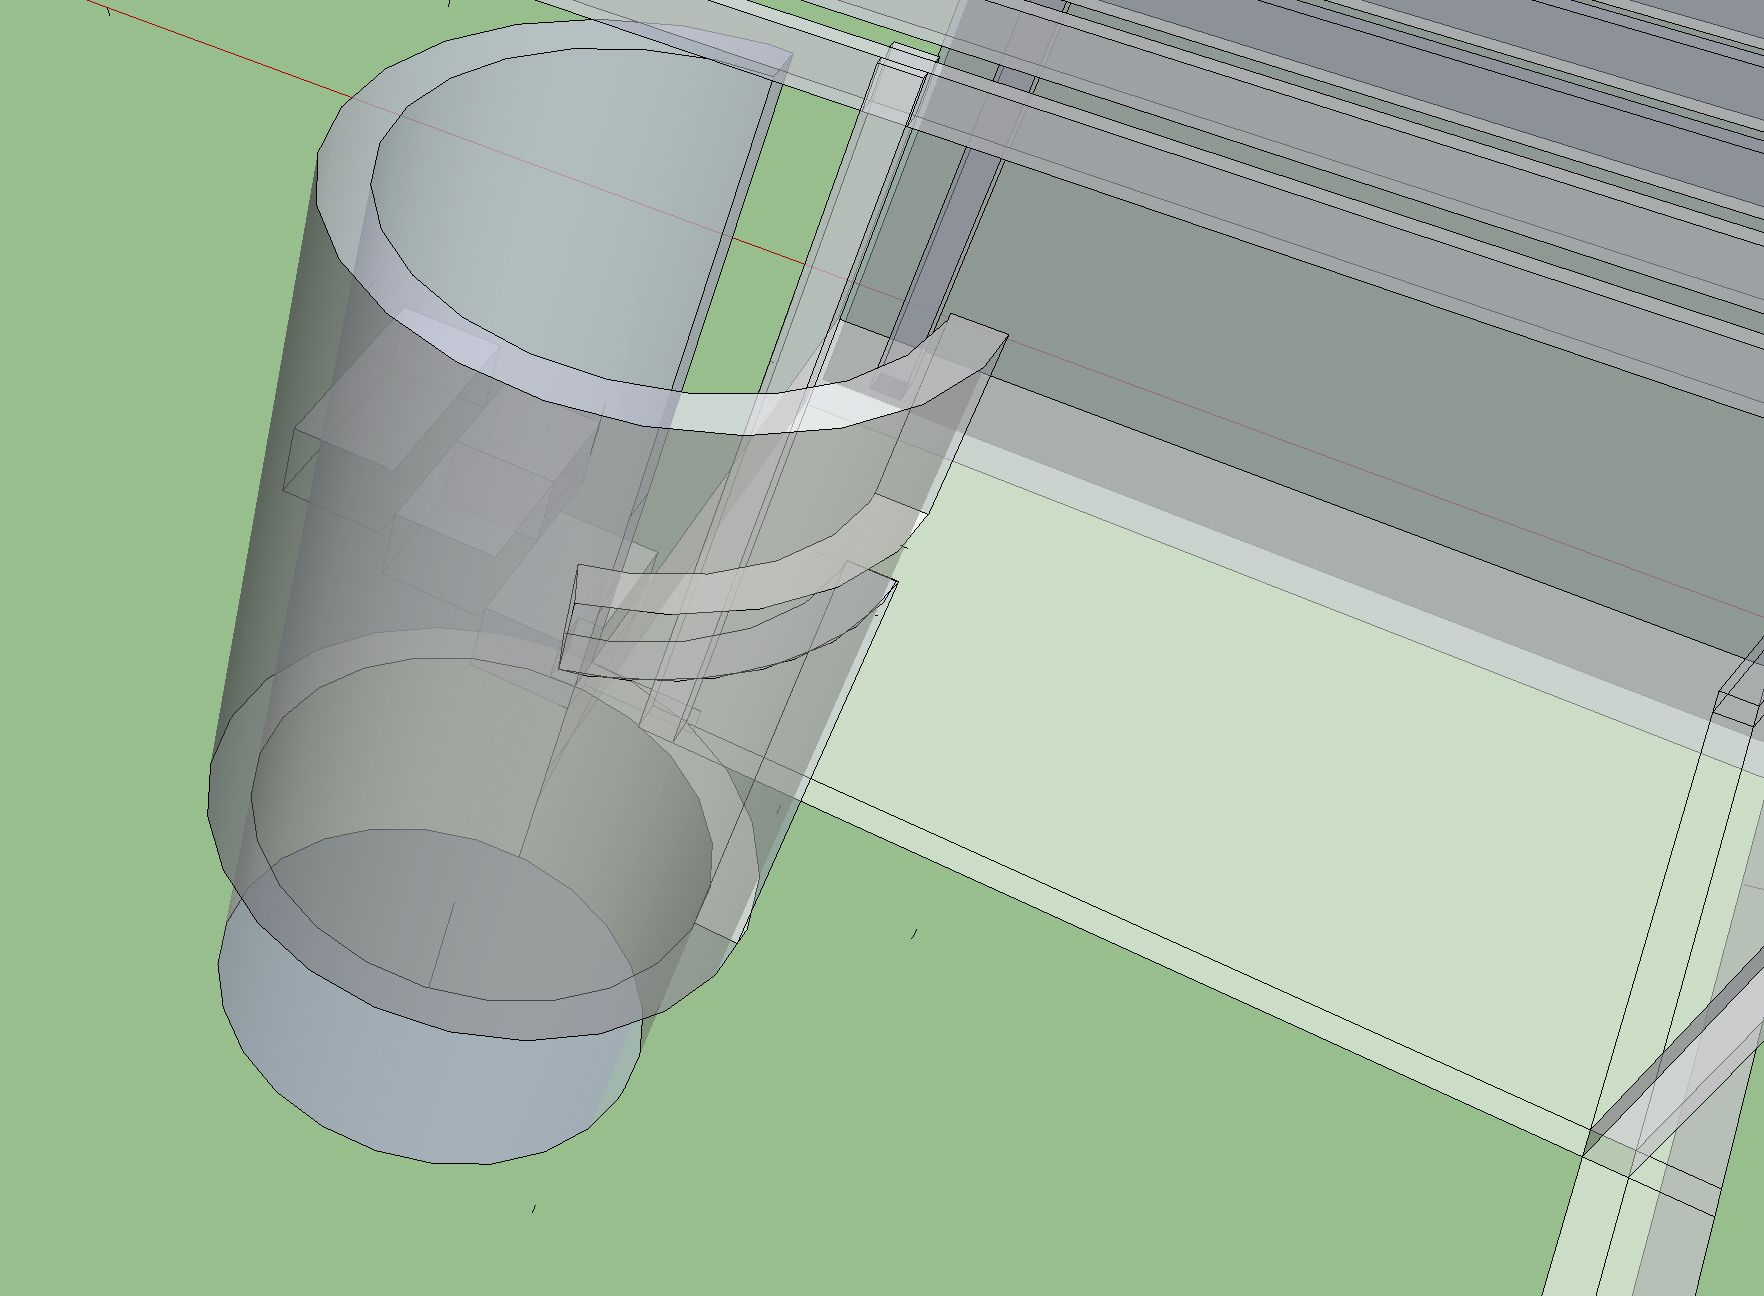 slit opening in shower/tub wall